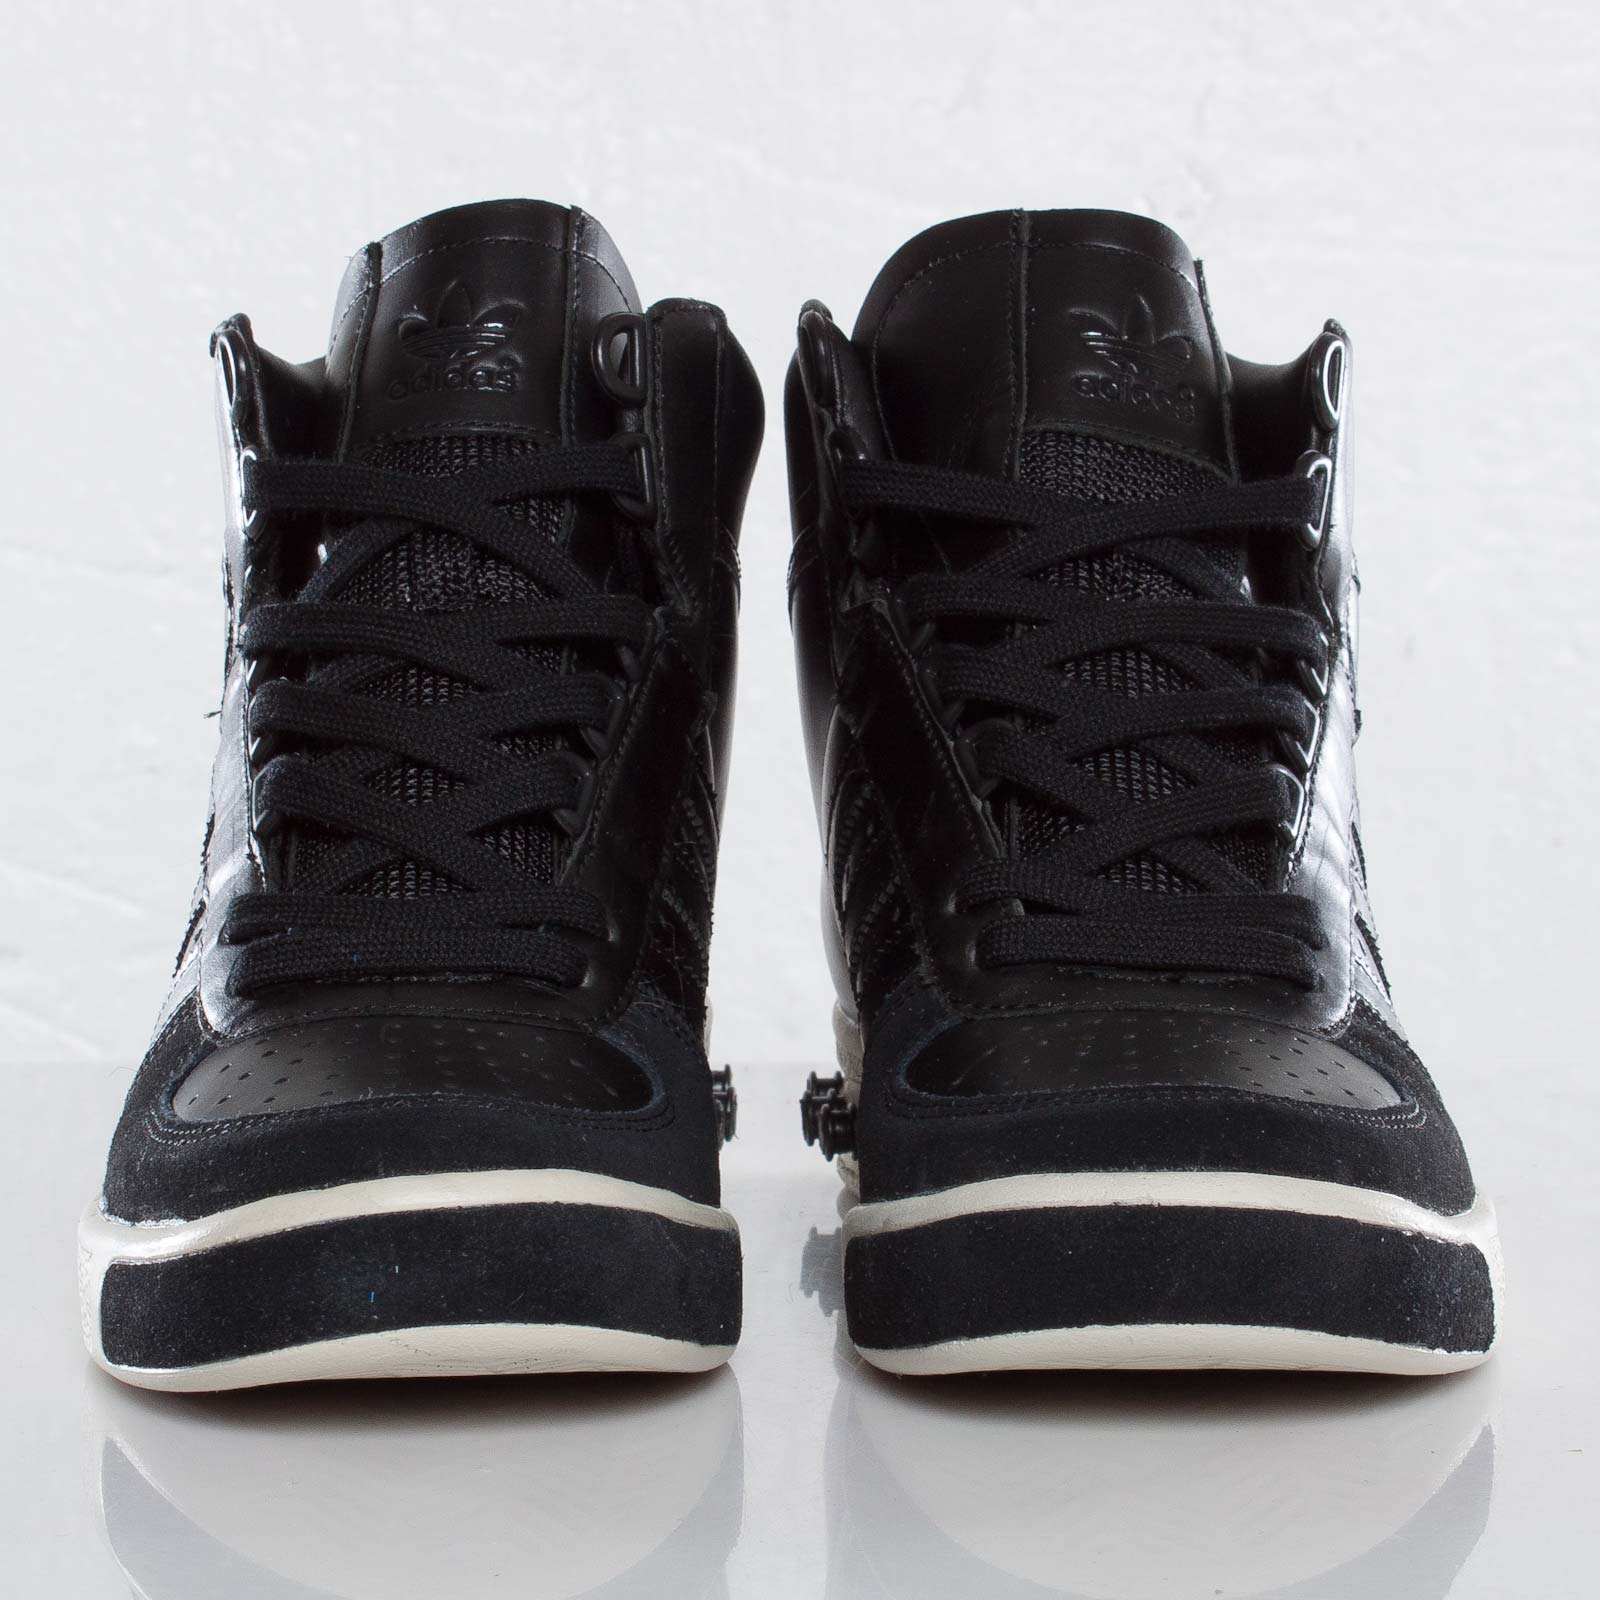 adidas G.S. ST G60643 Sneakersnstuff I Sneakers